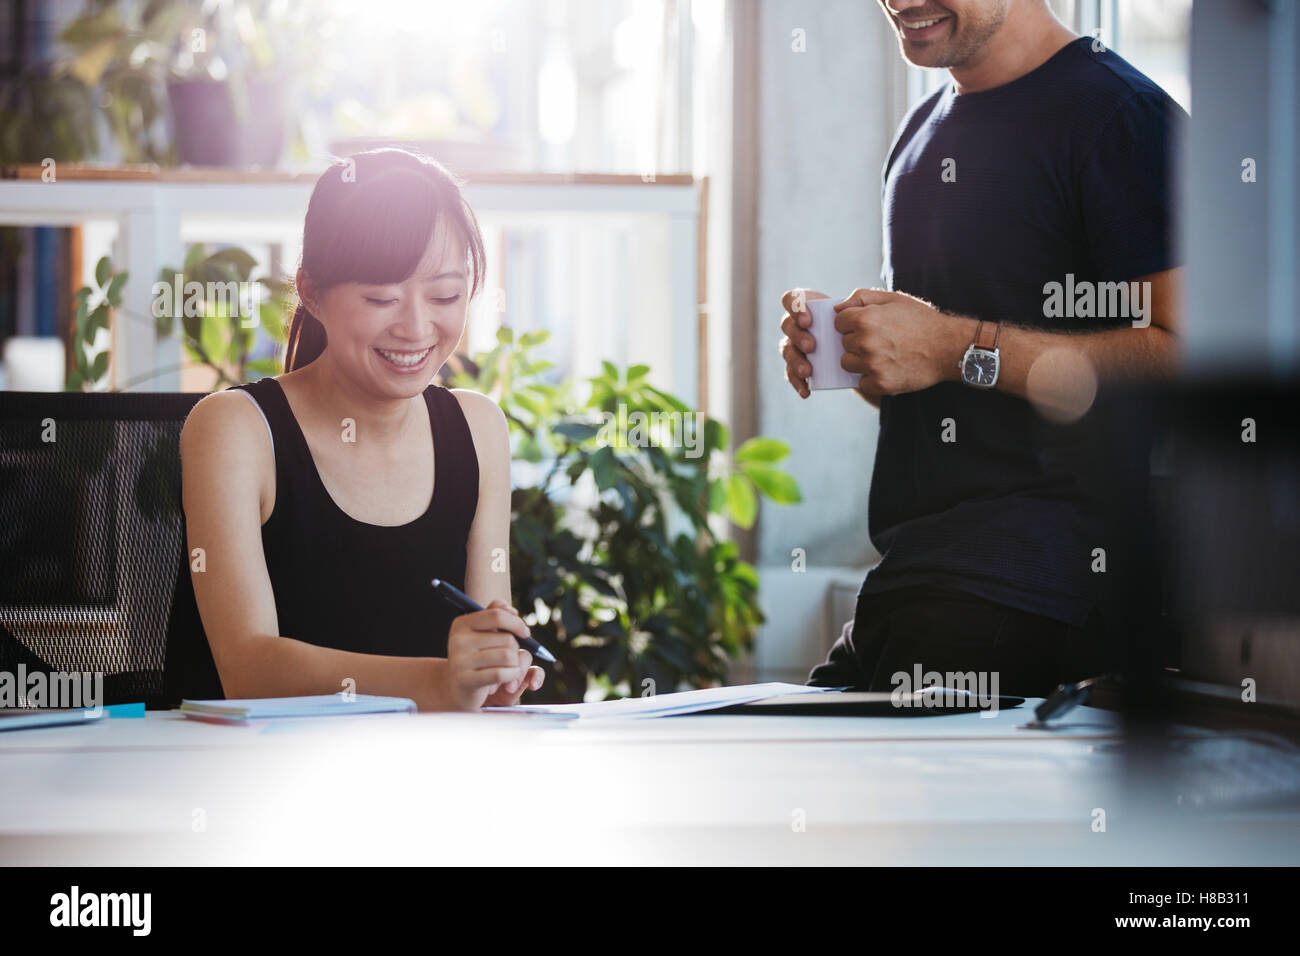 Shot of smiling young woman sitting at her desk working with male colleague standing by. Business people at work - Stock Image